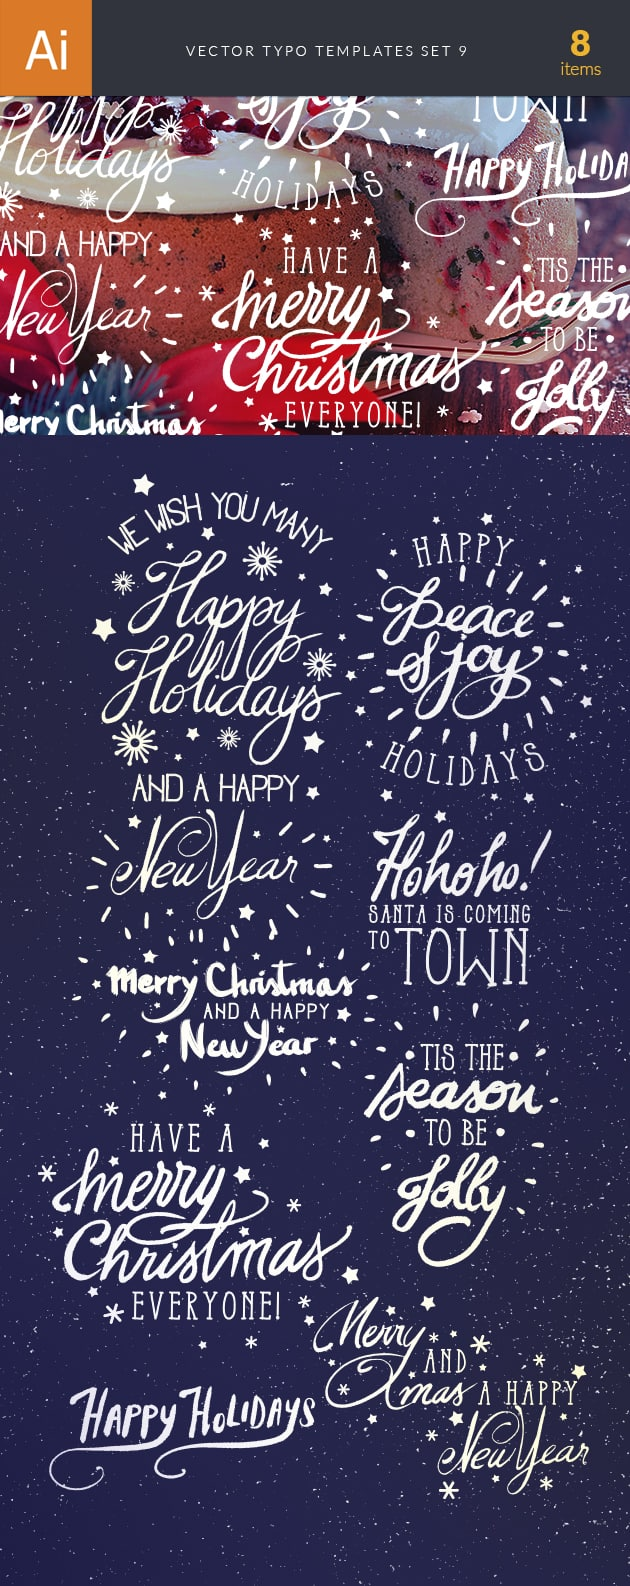 Vector Typography Templates Set 9 vector typography templates 9 preview large